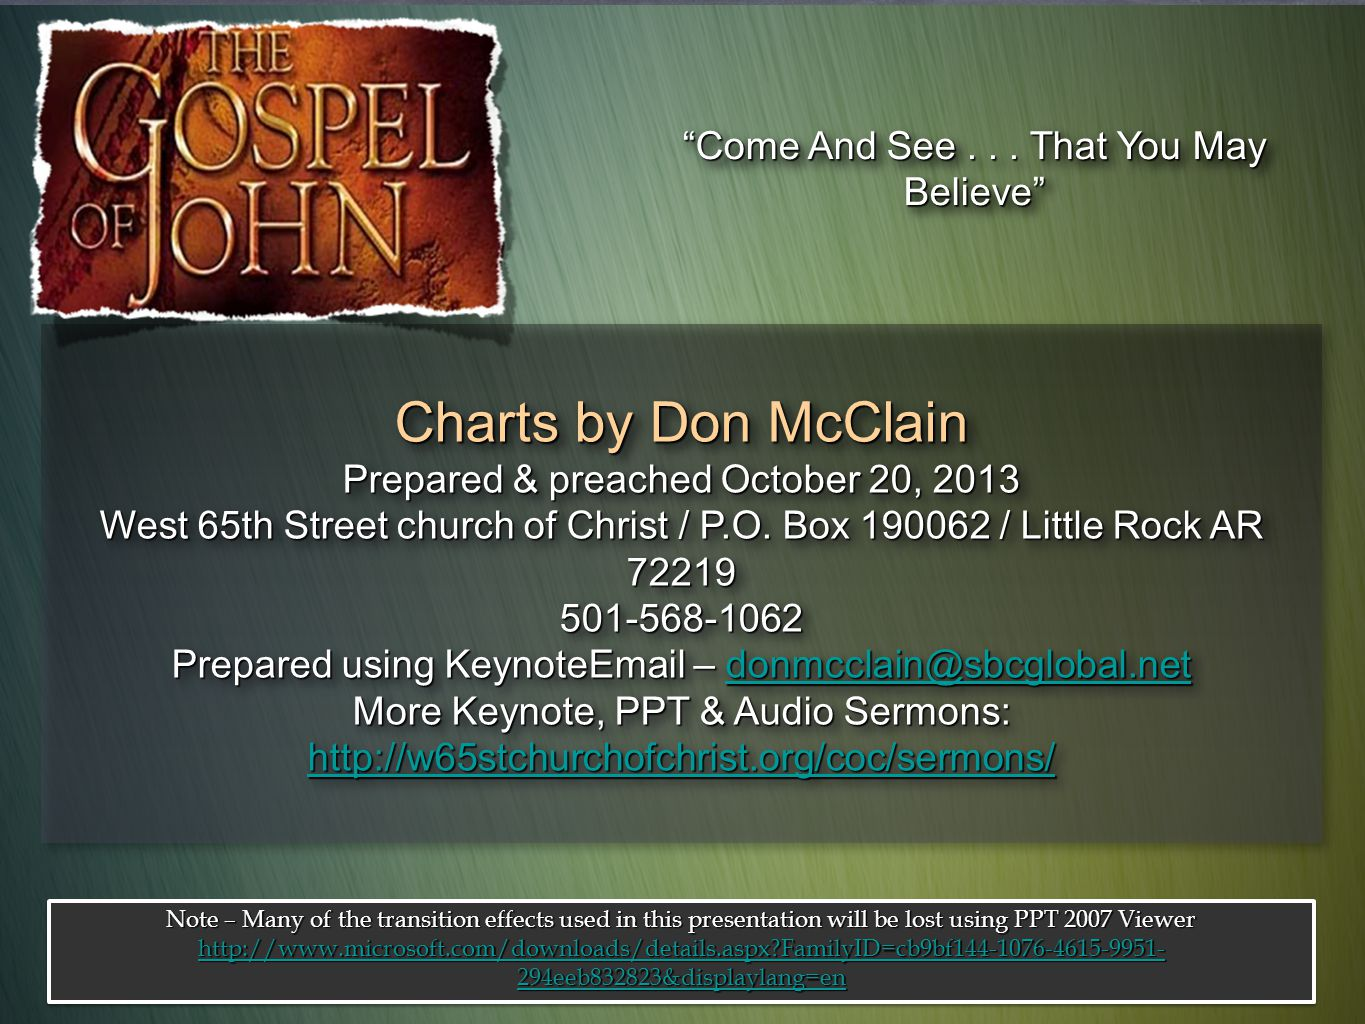 Charts by Don McClain Prepared & preached October 20, 2013 West 65th Street church of Christ / P.O. Box 190062 / Little Rock AR 72219 501-568-1062 Pre